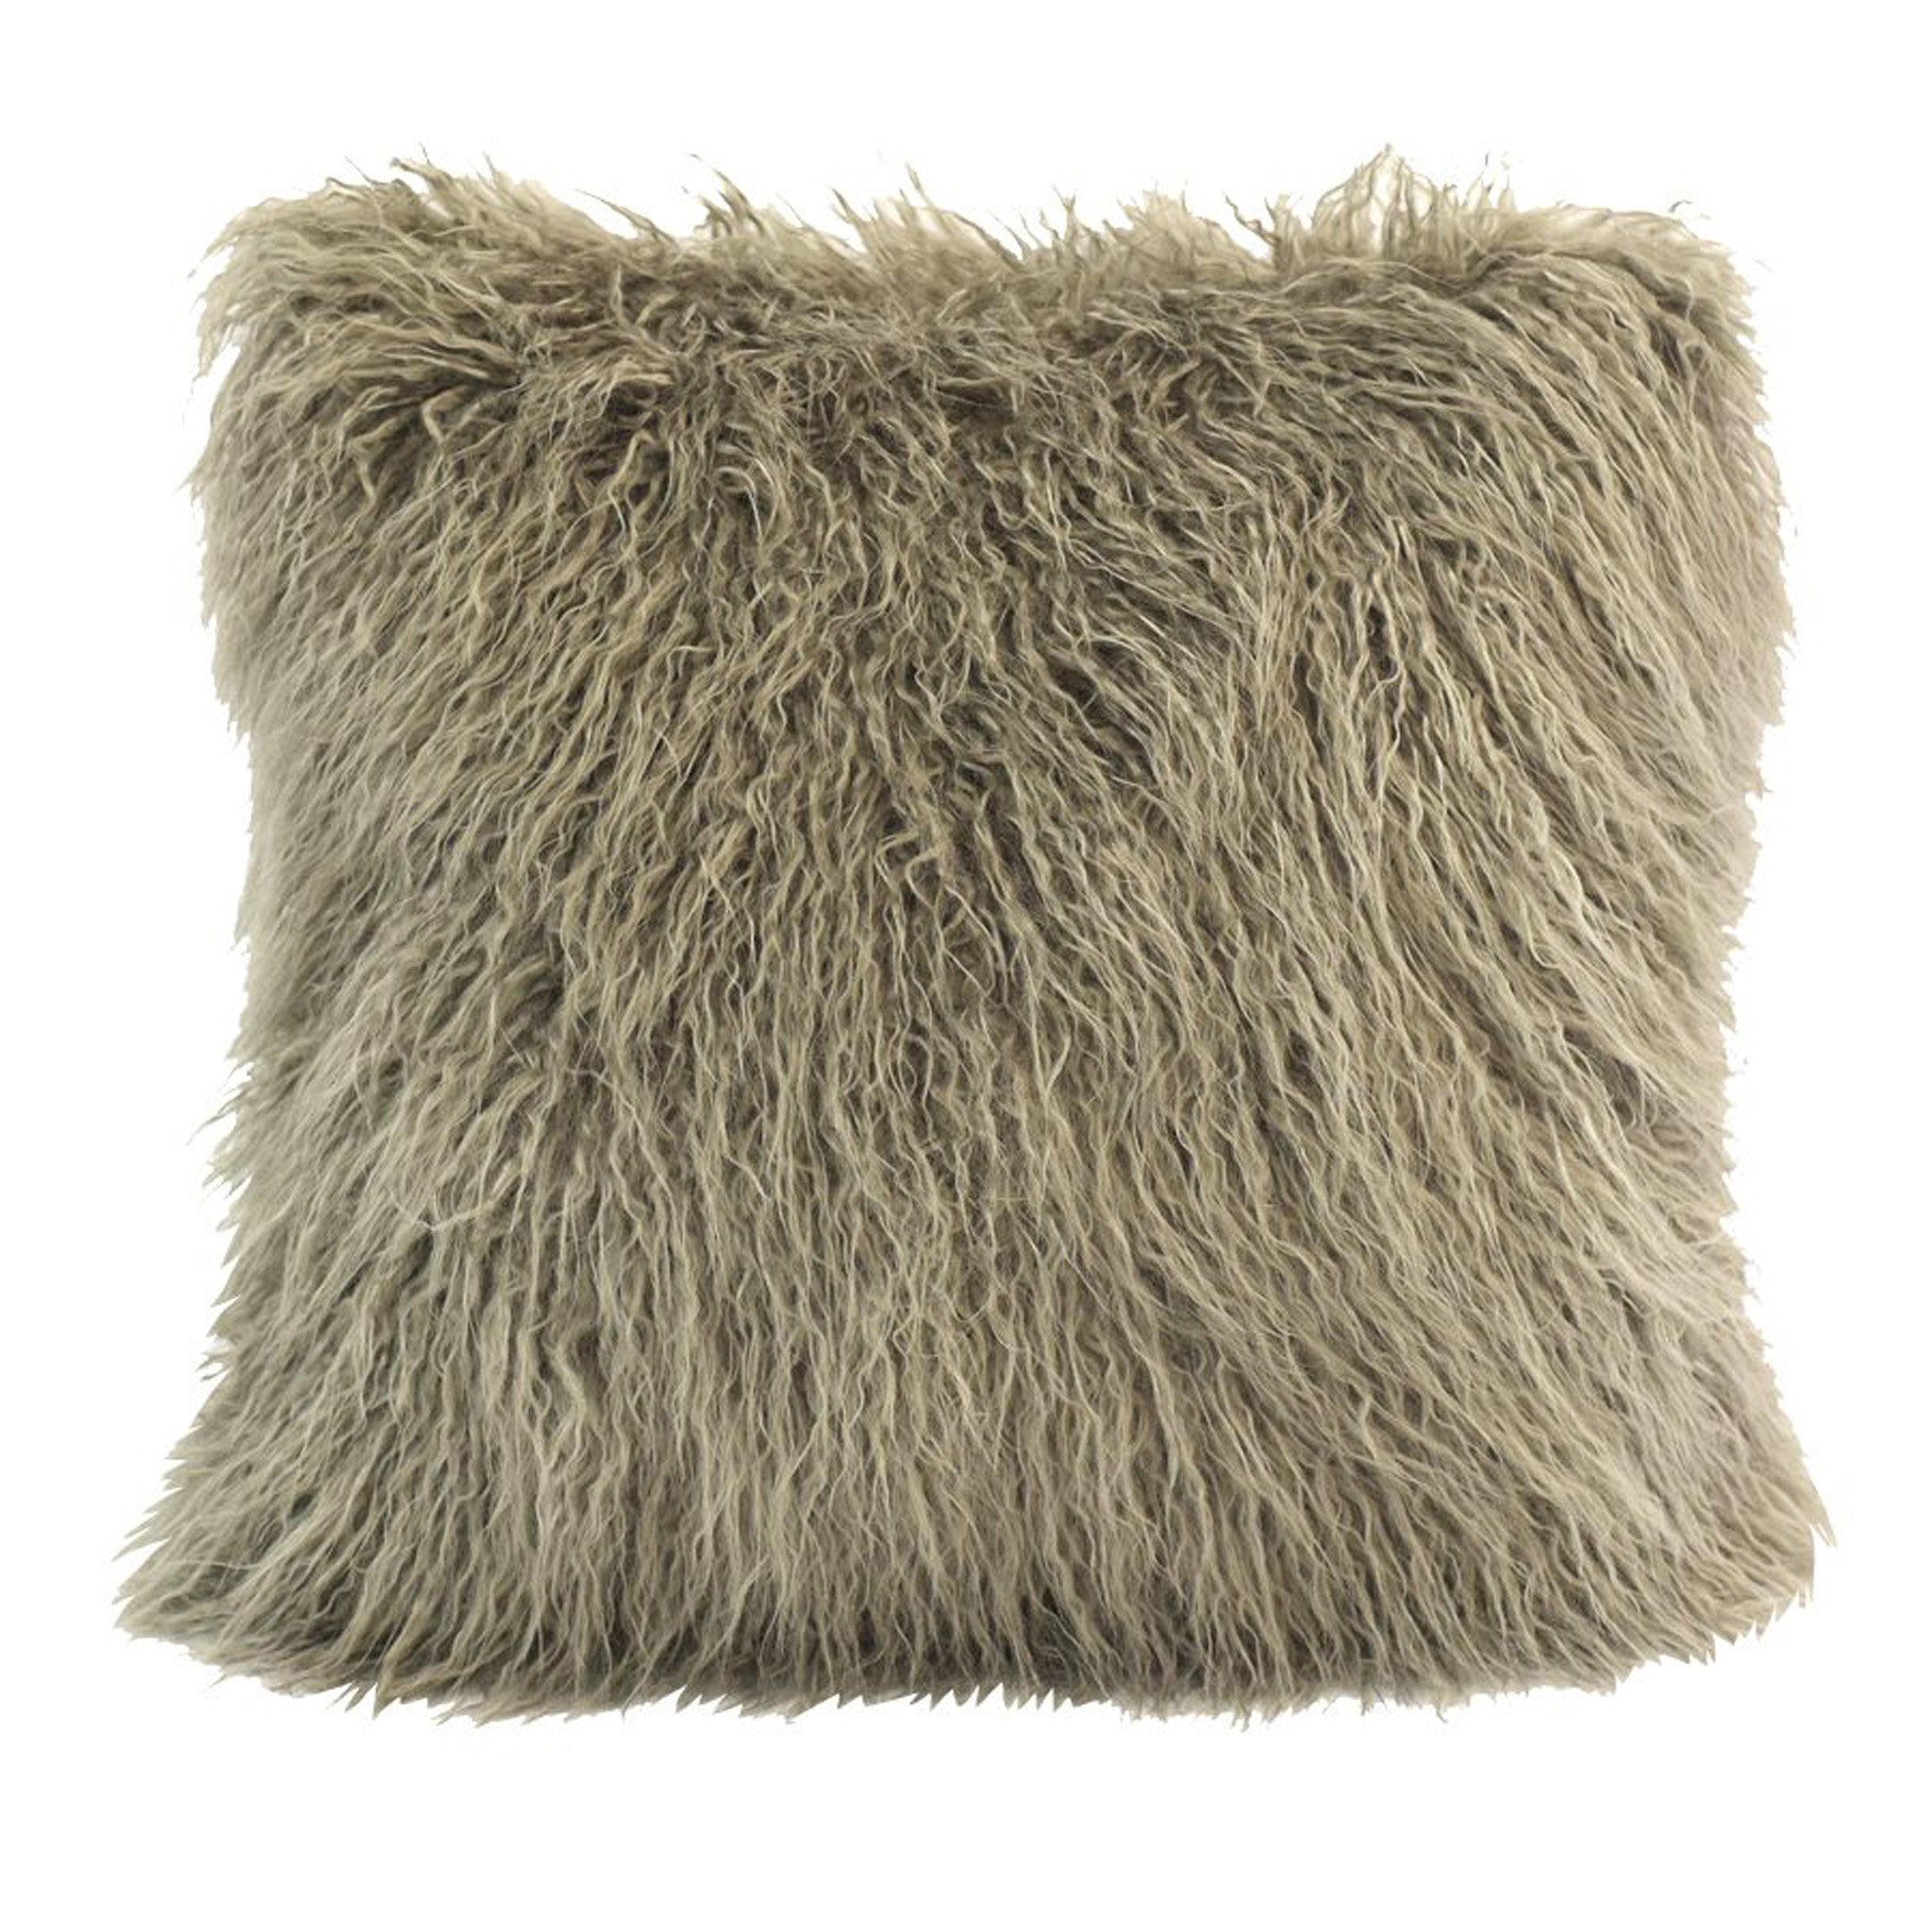 pillow rfellen raccoon aus waschb pelzkissen paustian furs from kanadischen lars made fur